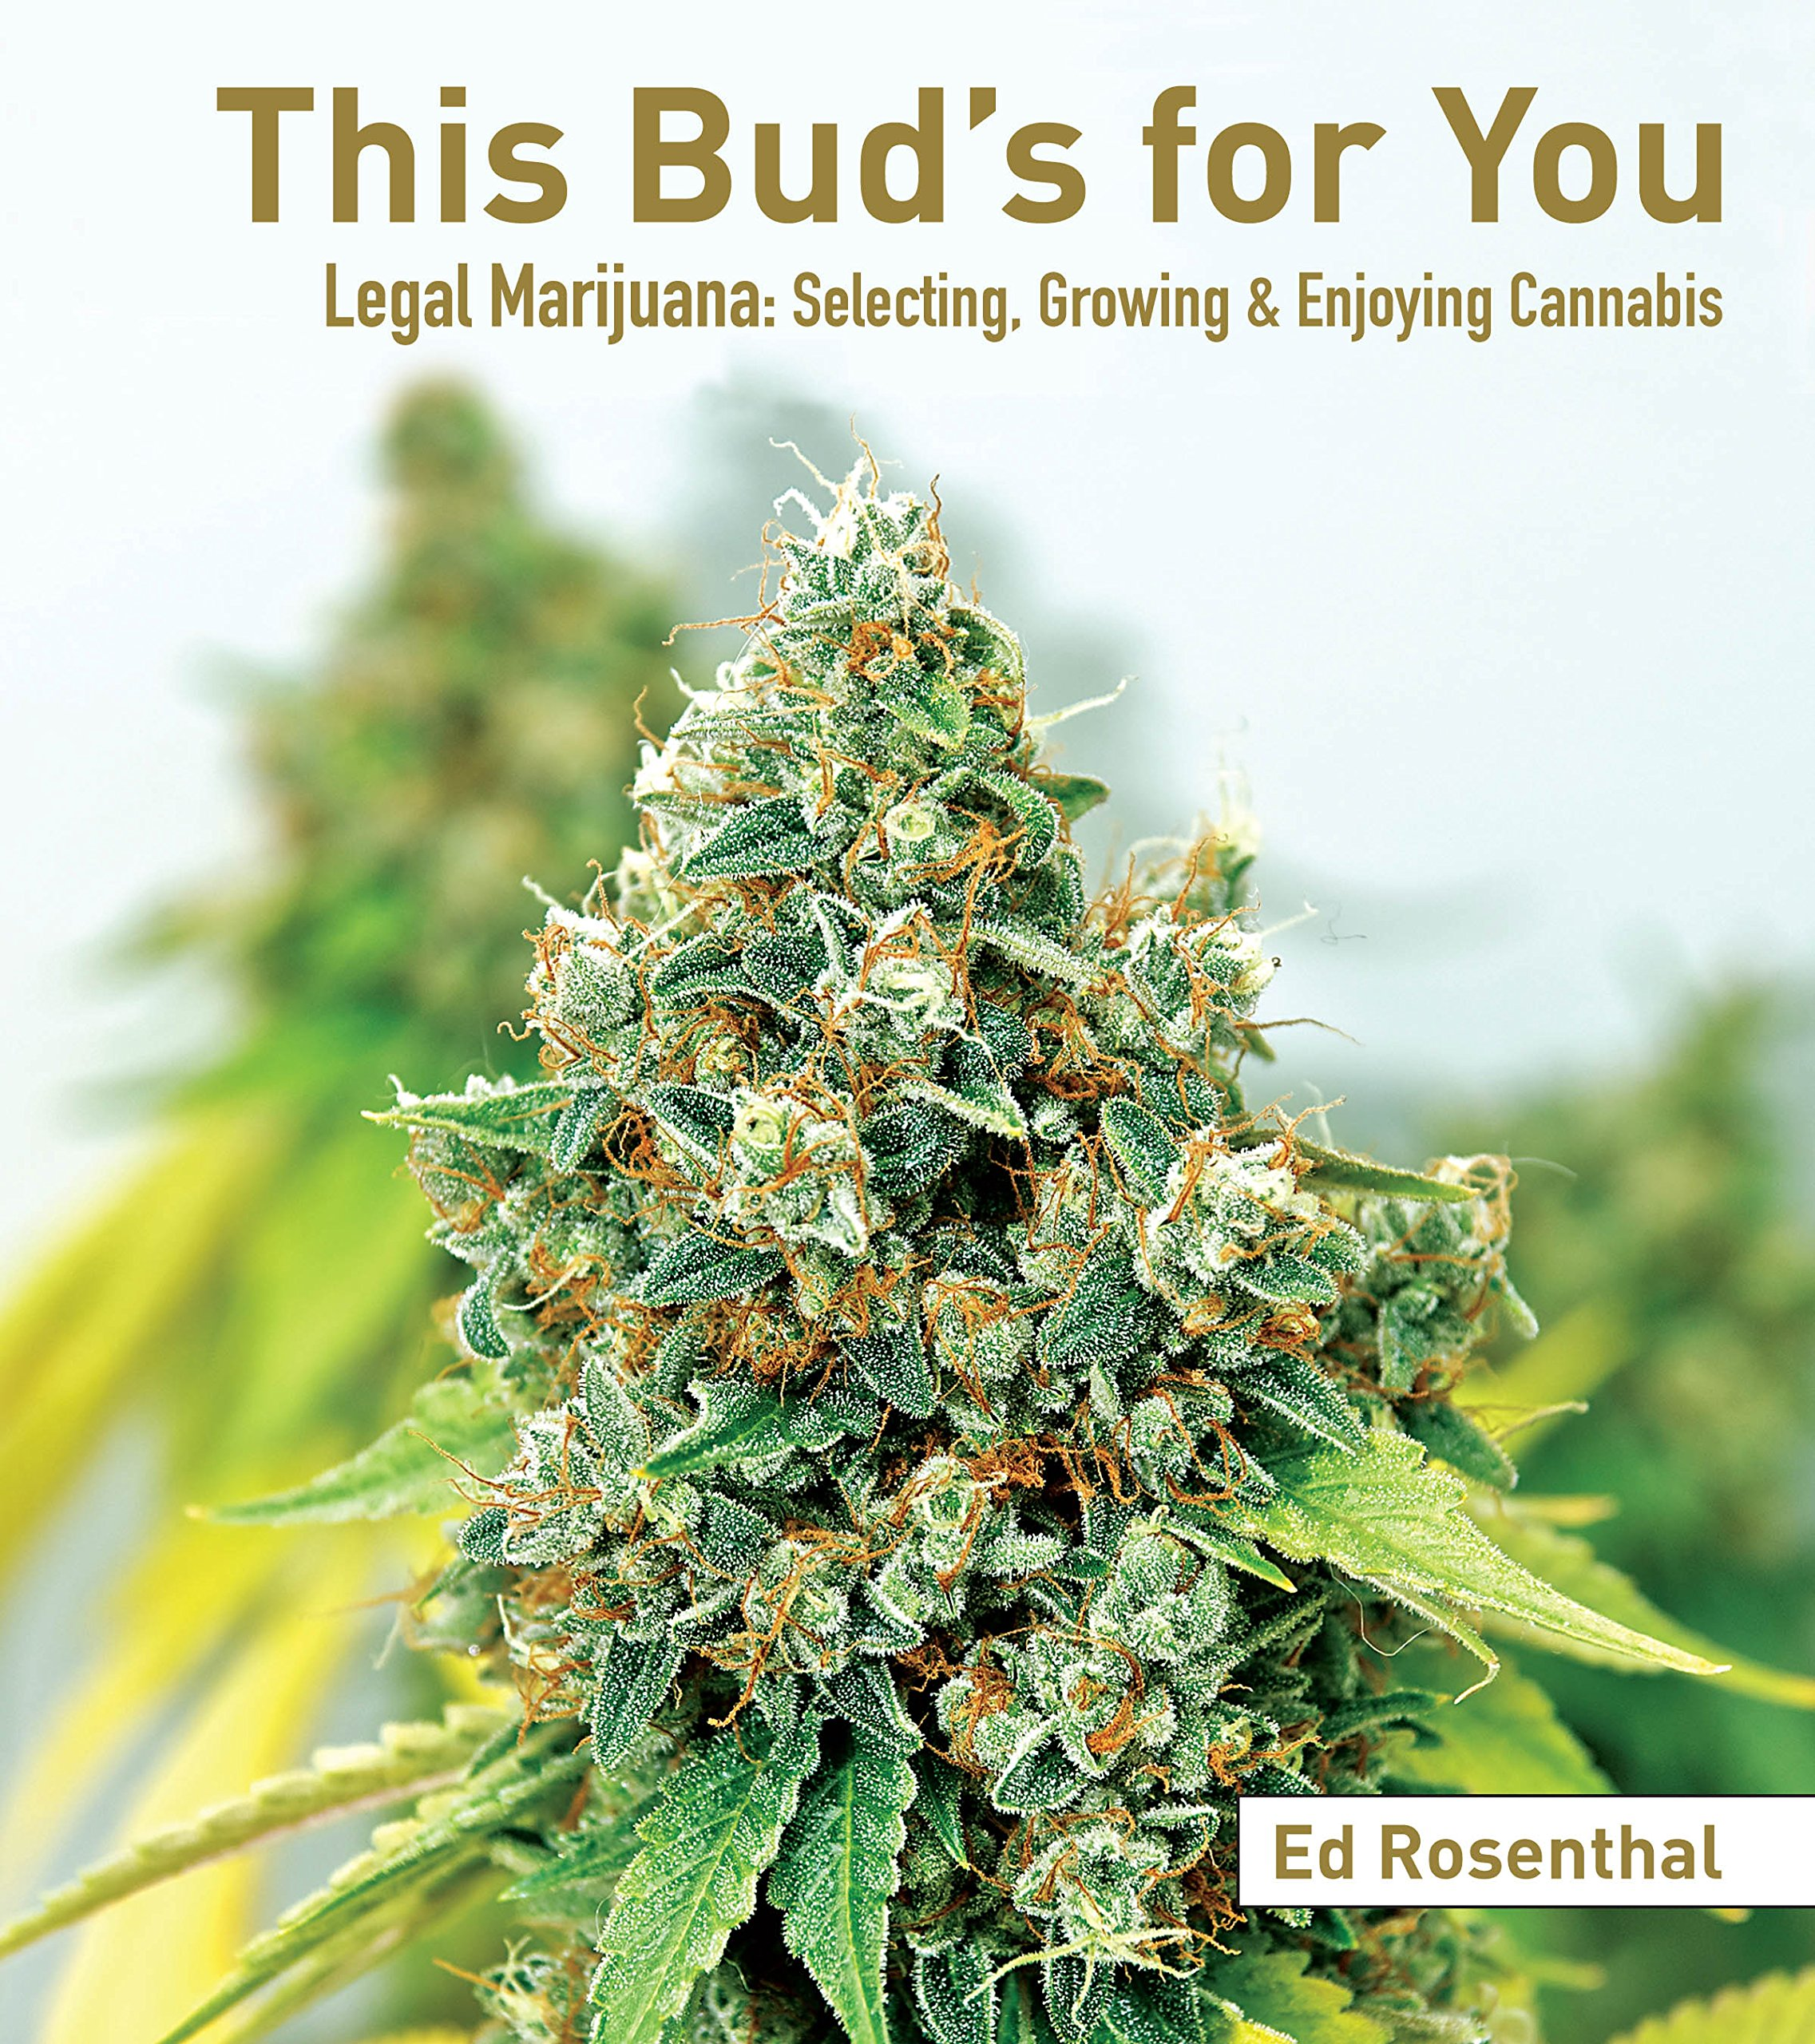 Weed Growing Games Download Windows - Amazon com this bud s for you legal marijuana selecting growing enjoying cannabis 9781936807307 ed rosenthal books